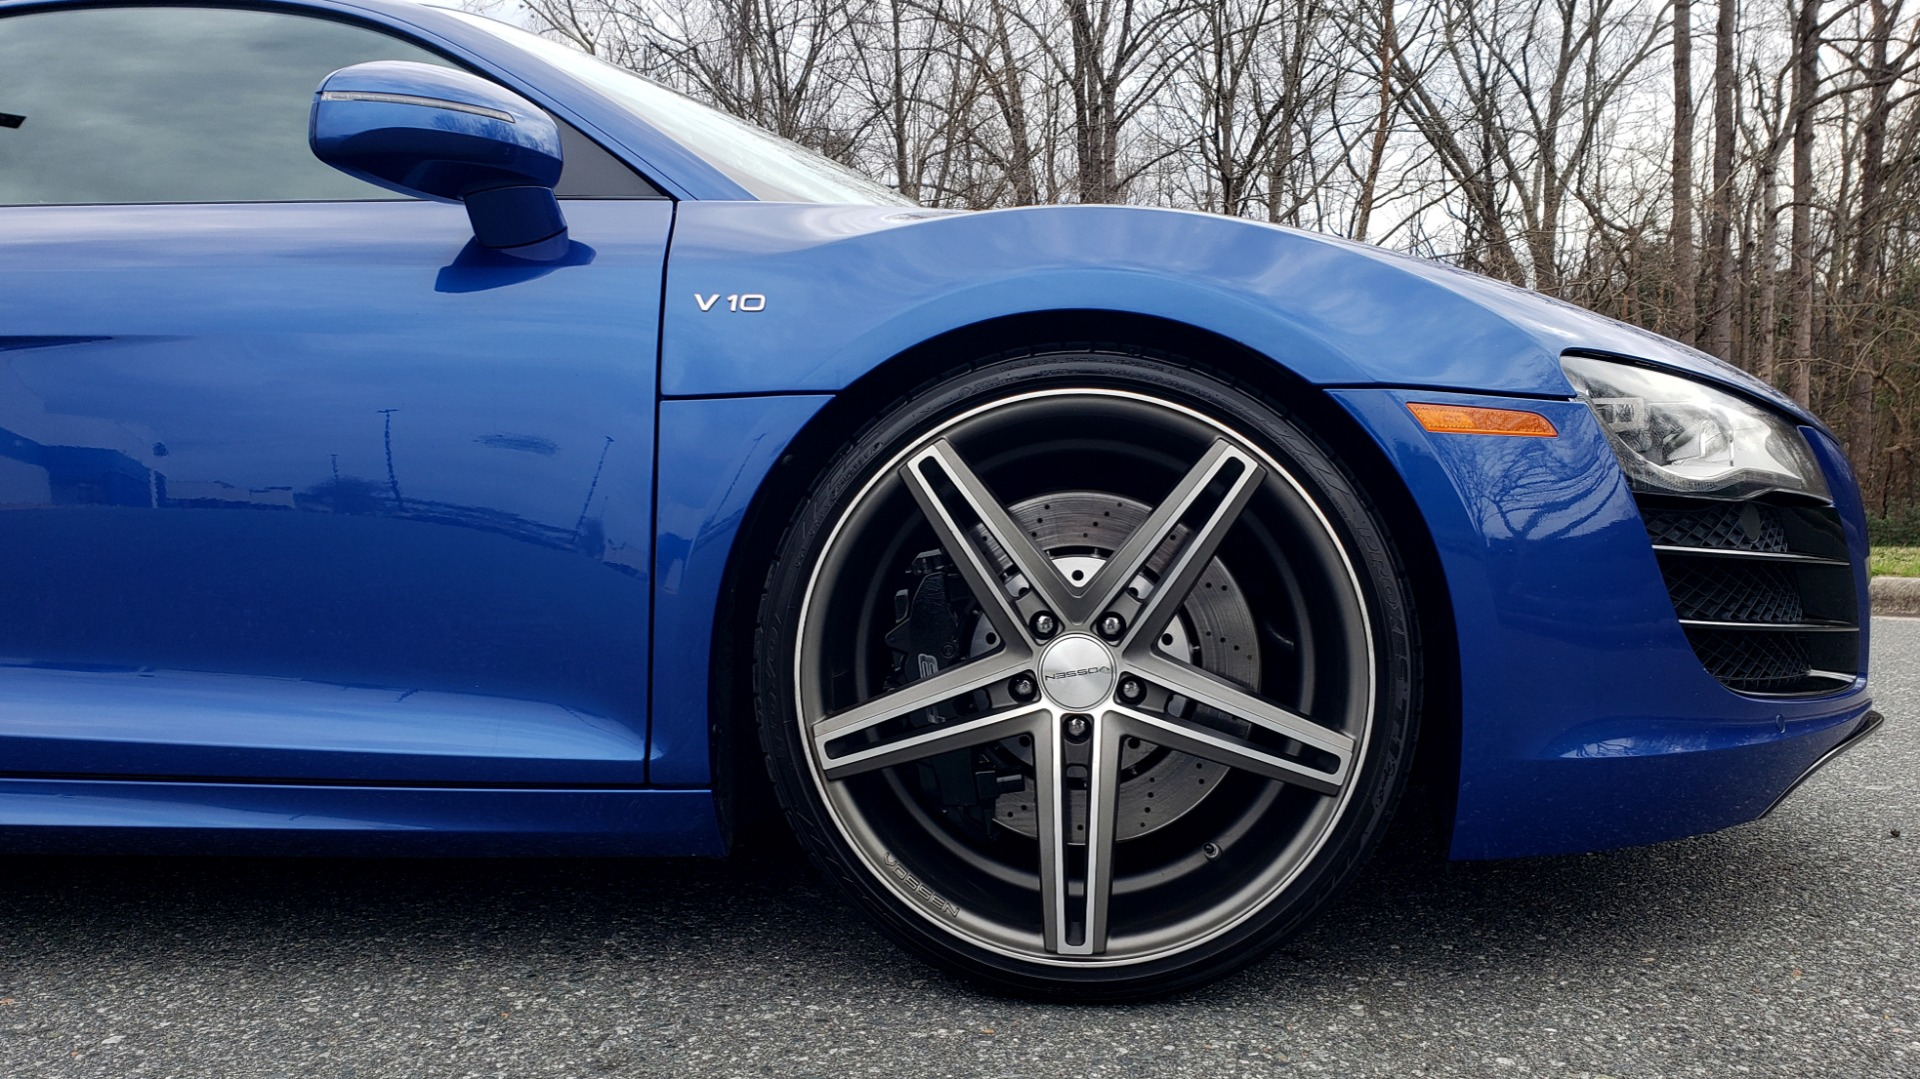 Used 2010 Audi R8 5.2L V10 / AWD / NAV / B&O SND / HTD STS / CUSTOM EXH & WHEELS for sale $78,000 at Formula Imports in Charlotte NC 28227 74